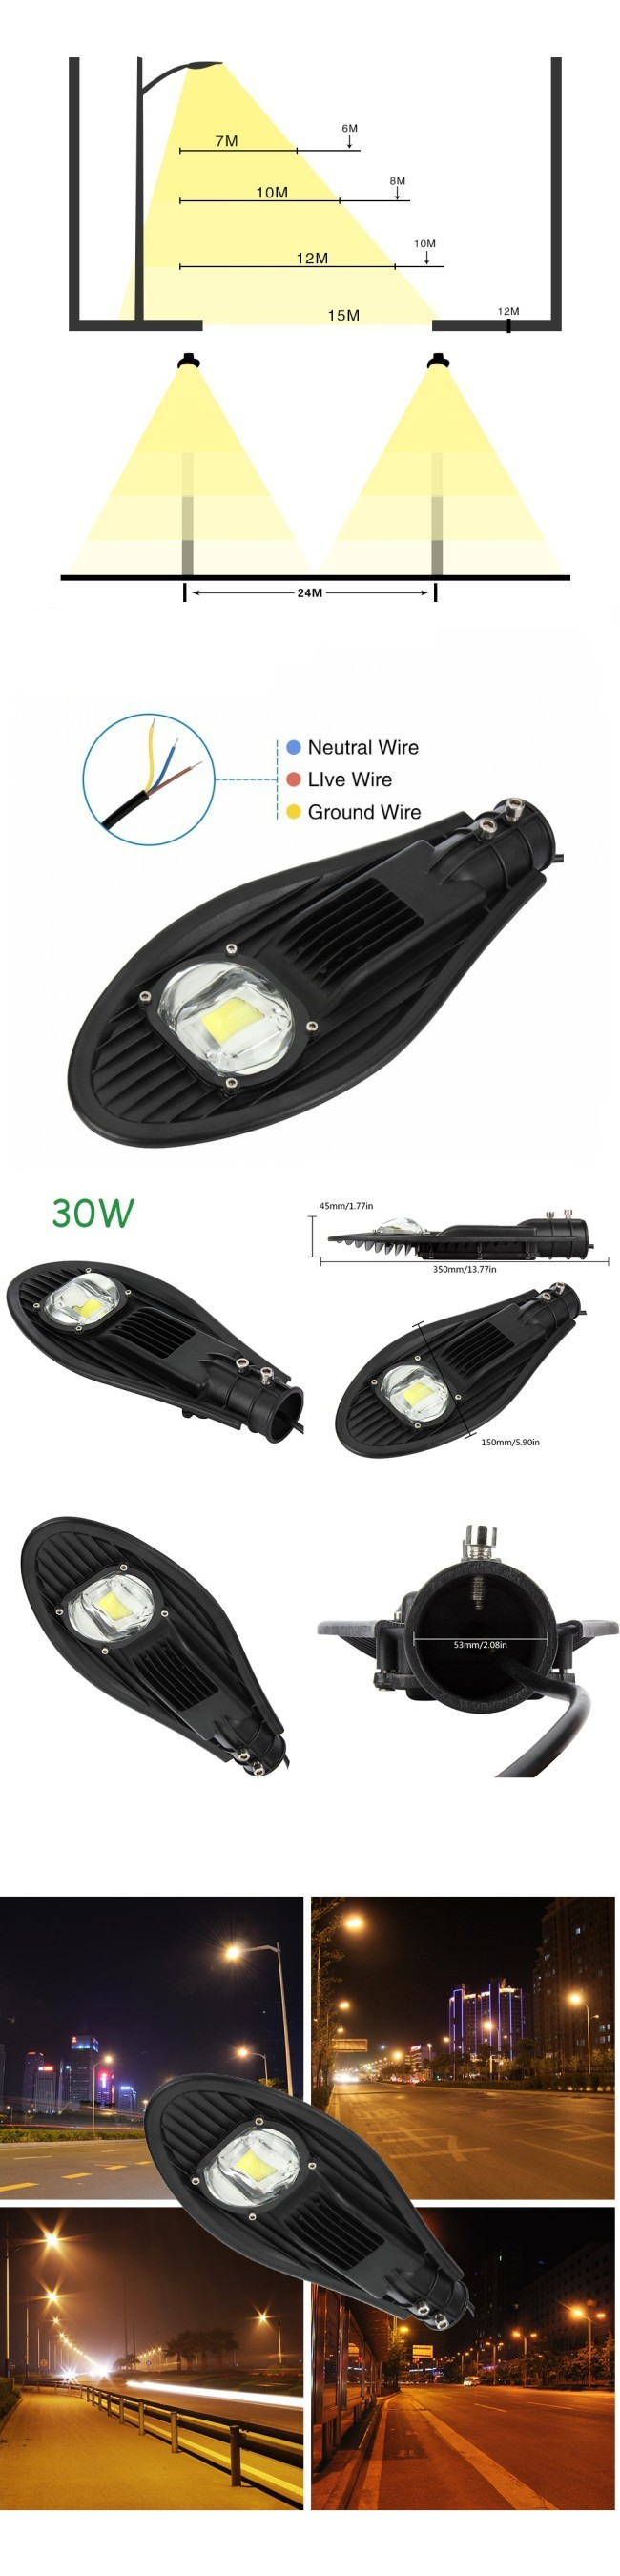 Highway 30W LED Street Lamp COB LED 5-Year Warranty IP65 White Black Housing